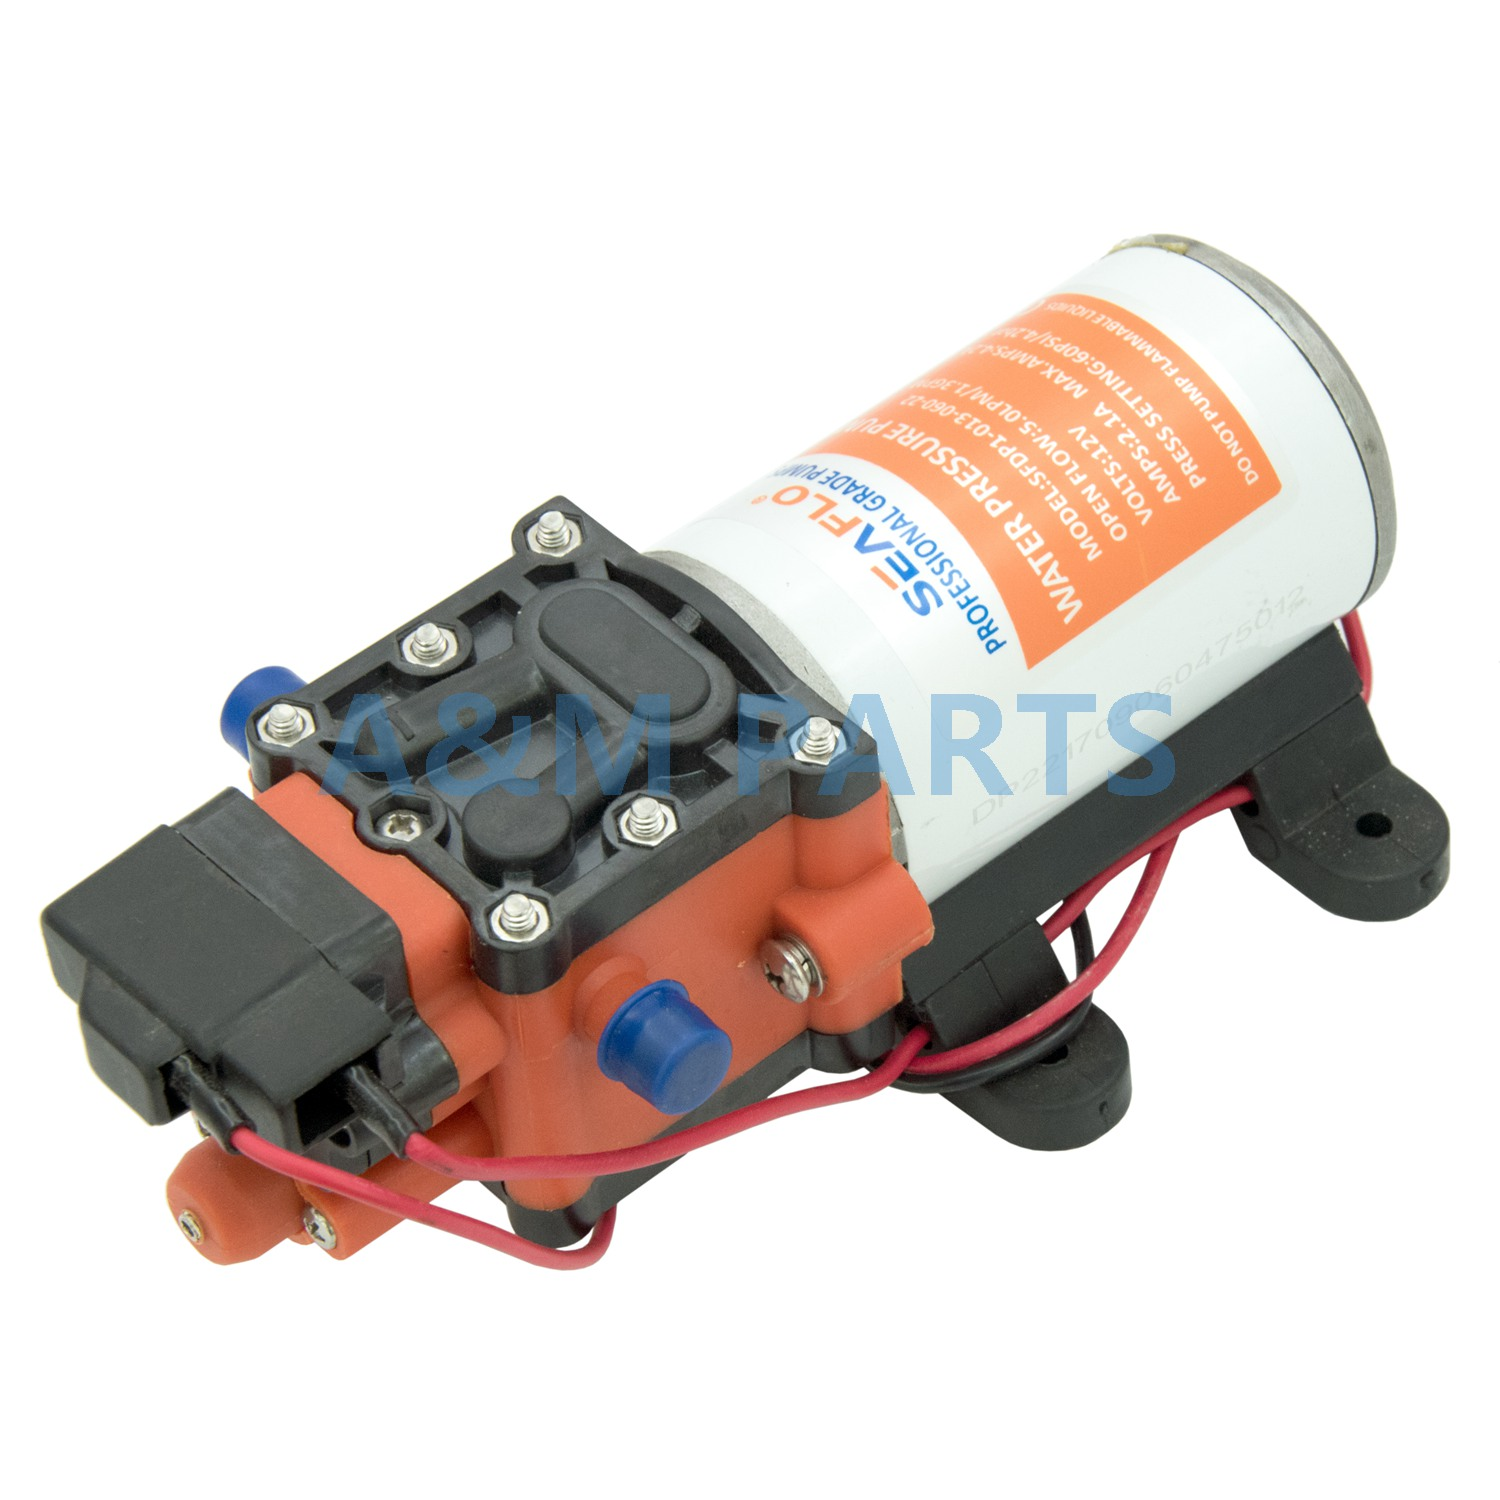 12V 60PSI 1.3 GPM Diaphragm Pump Boat RV Water Pressure Self Priming Pump 12v 60psi 1 3 gpm diaphragm pump boat rv water pressure self priming pump